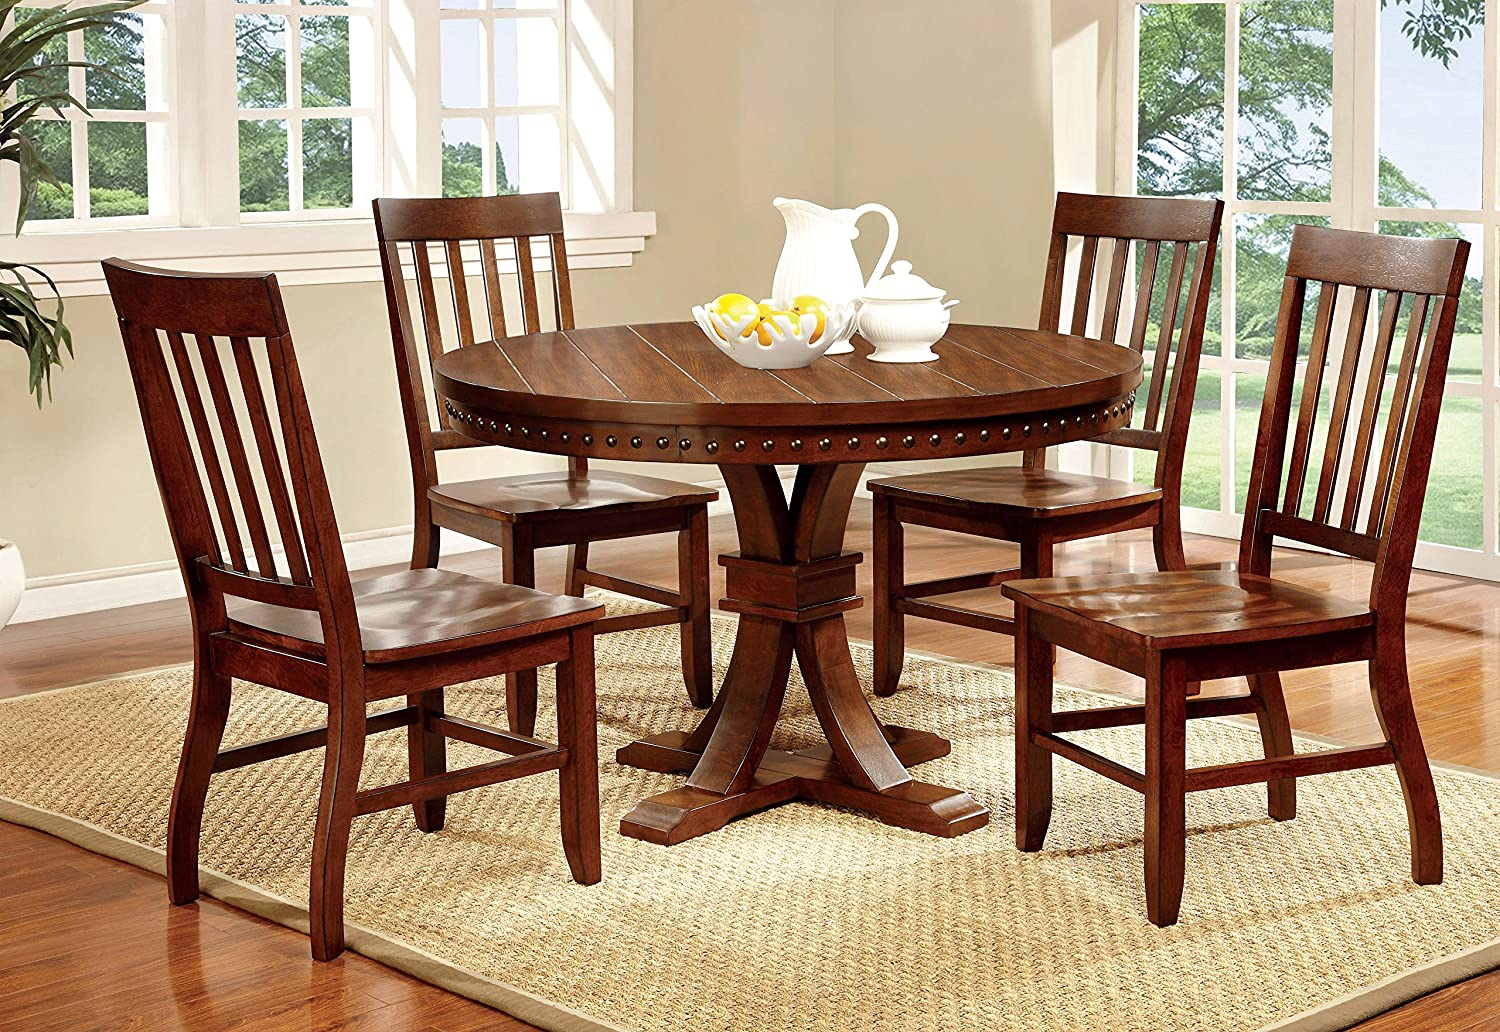 amazoncom furniture of america castile 5 piece transitional round dining table set dark oak table chair sets - Wooden Dining Table With Chairs